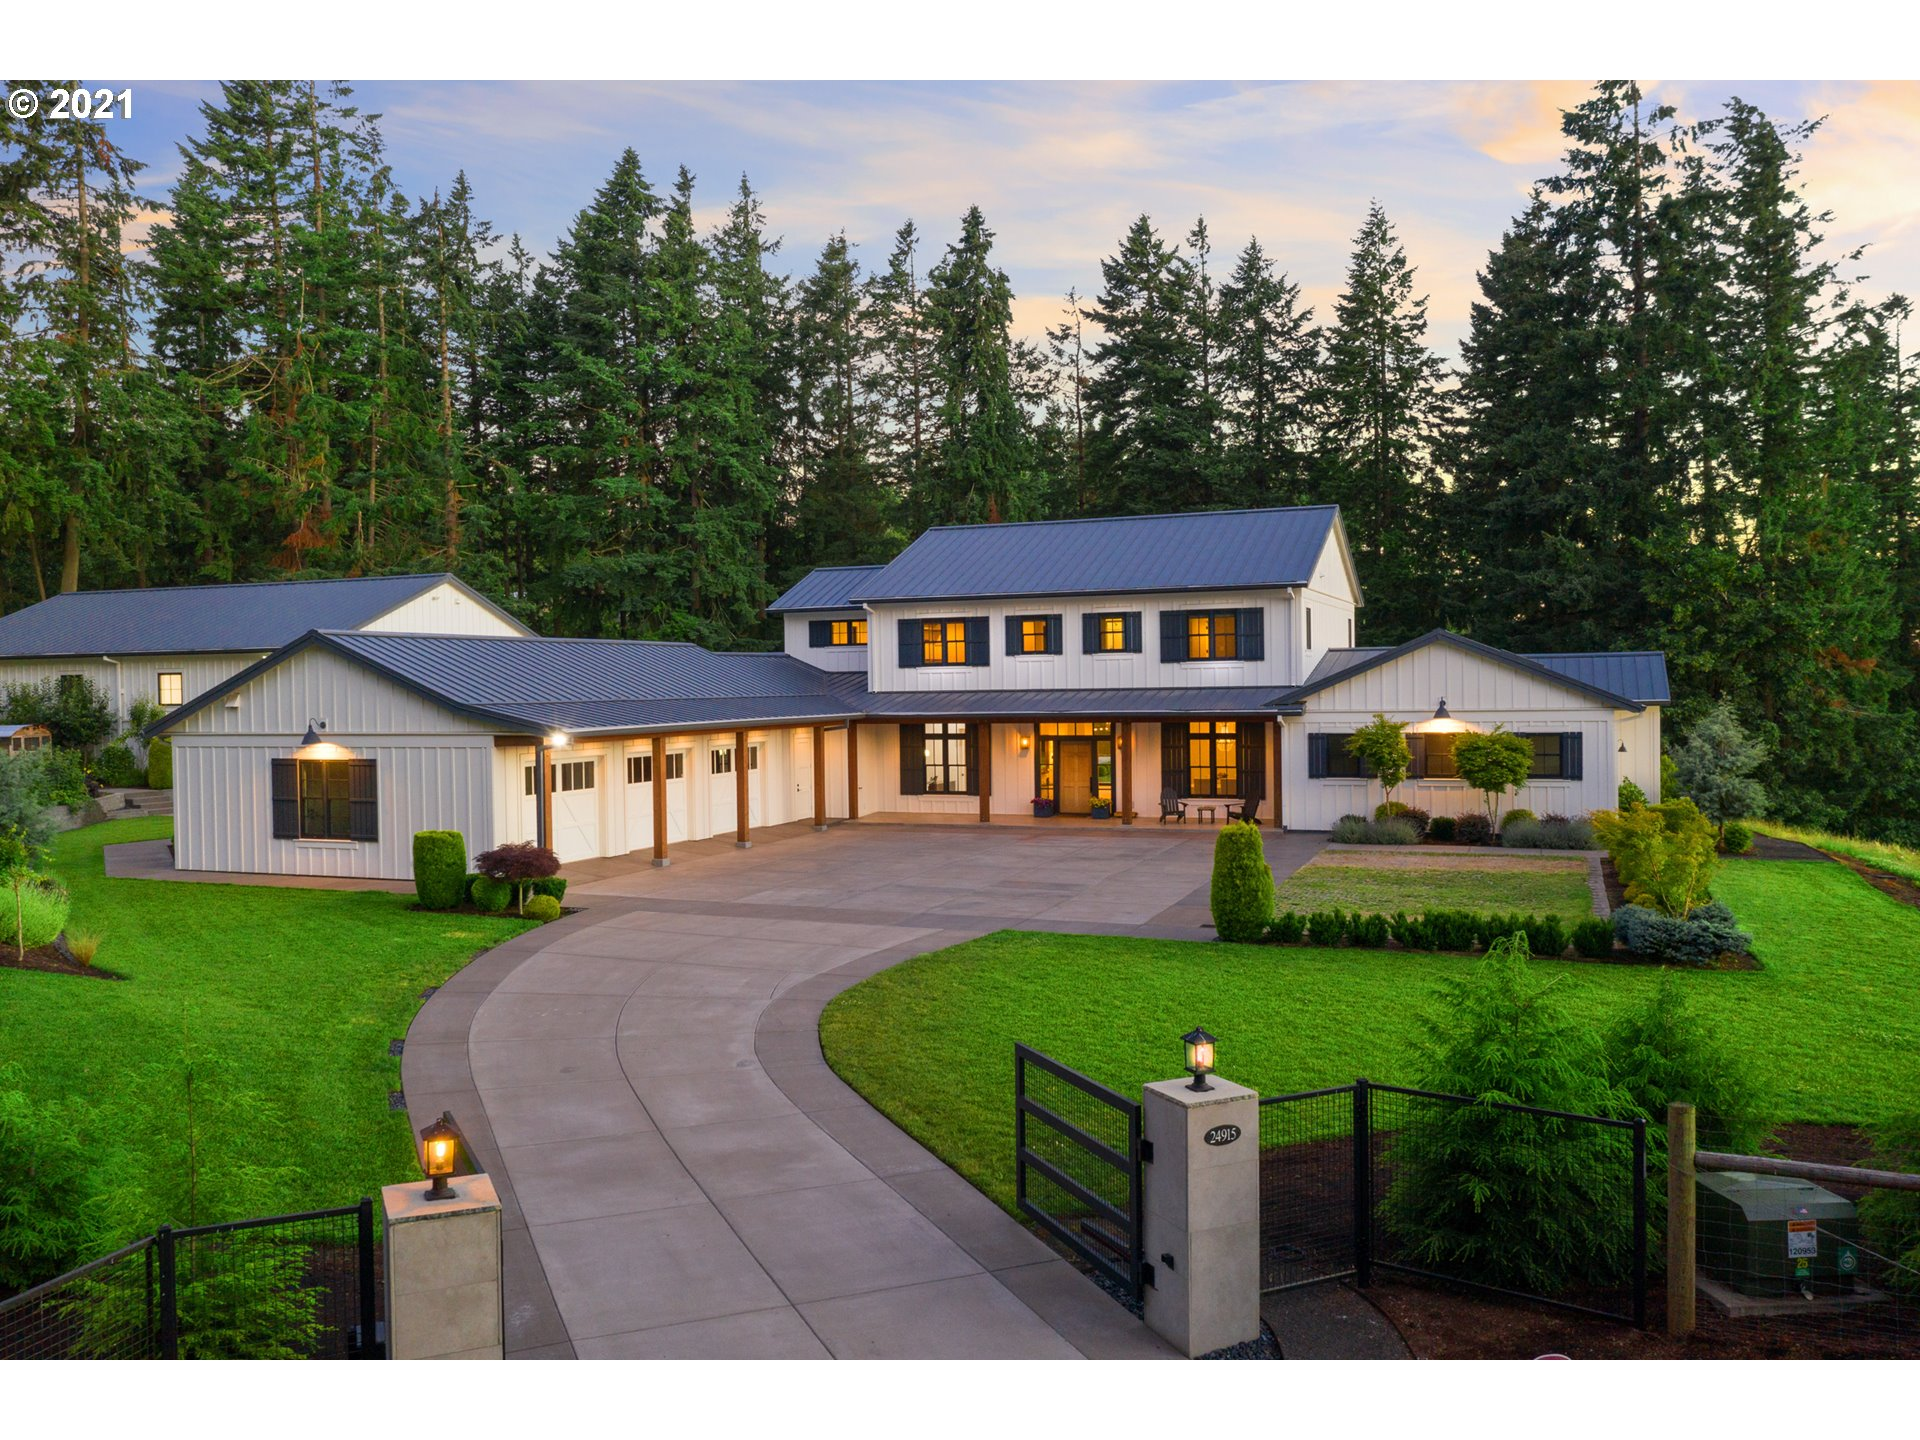 Stunning custom home situated on 6.2 acres in the heart of Pete's Mtn. Built with no details left untouched. Great room floor plan with walls of windows and high ceilings throughout. The gourmet kitchen is open and airy. Primary bedroom suite + 2nd suite on main. This home is perfect for all lifestyles! Lg game rm, office, private gym & sauna PLUS a 2000sf connected custom basketball ct w/soundproofing. Entertaining outdoor space w/sparkling pool,manicured lawns,garden beds & views. Gated entry.